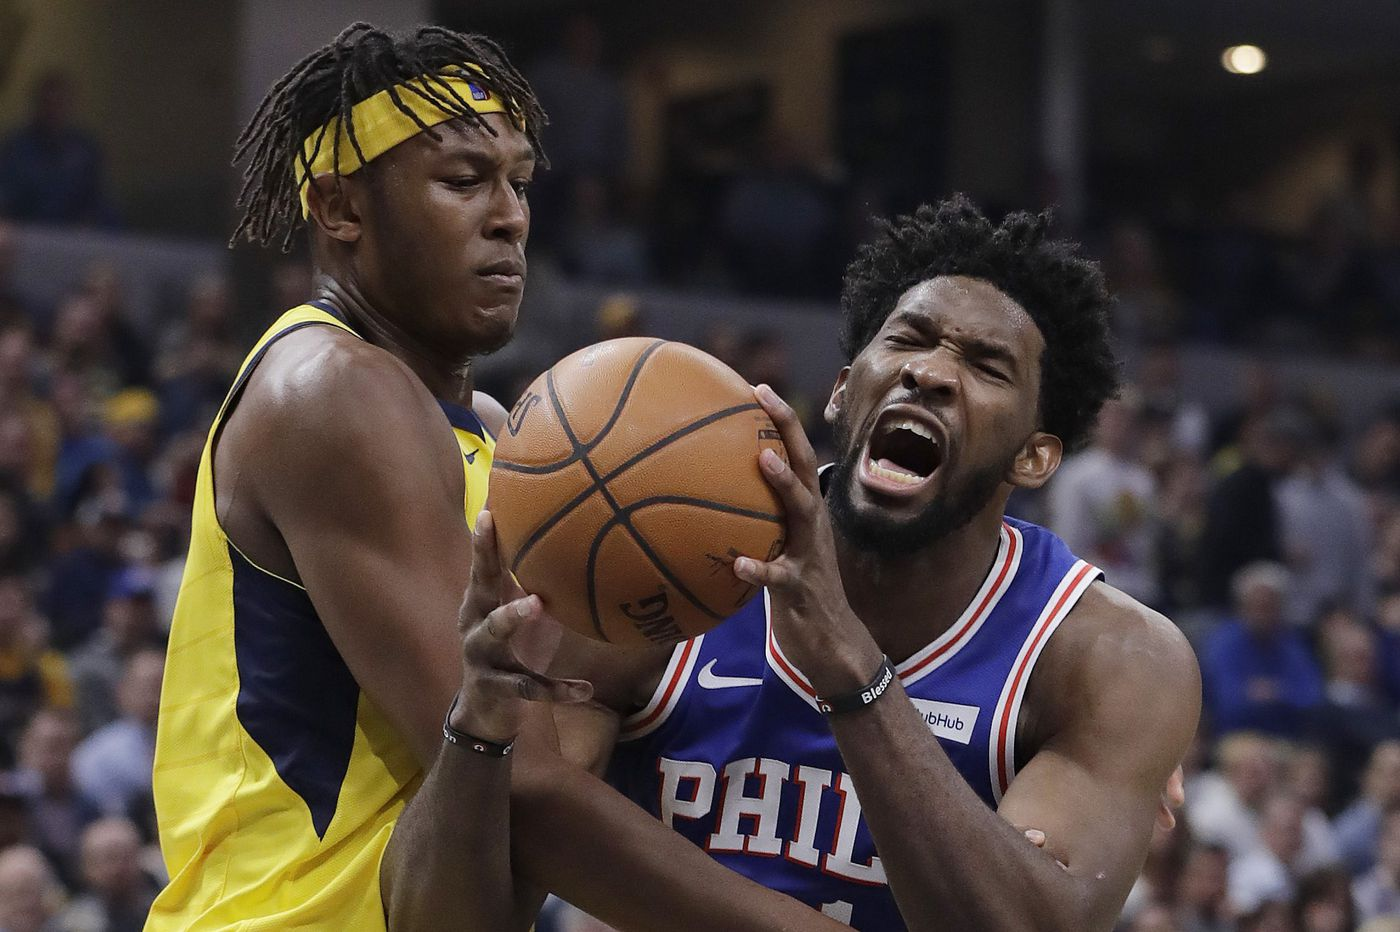 Sixers-Pacers observations, best and worst awards: Markelle Fultz, Dario Saric, getting scorched by another scorer